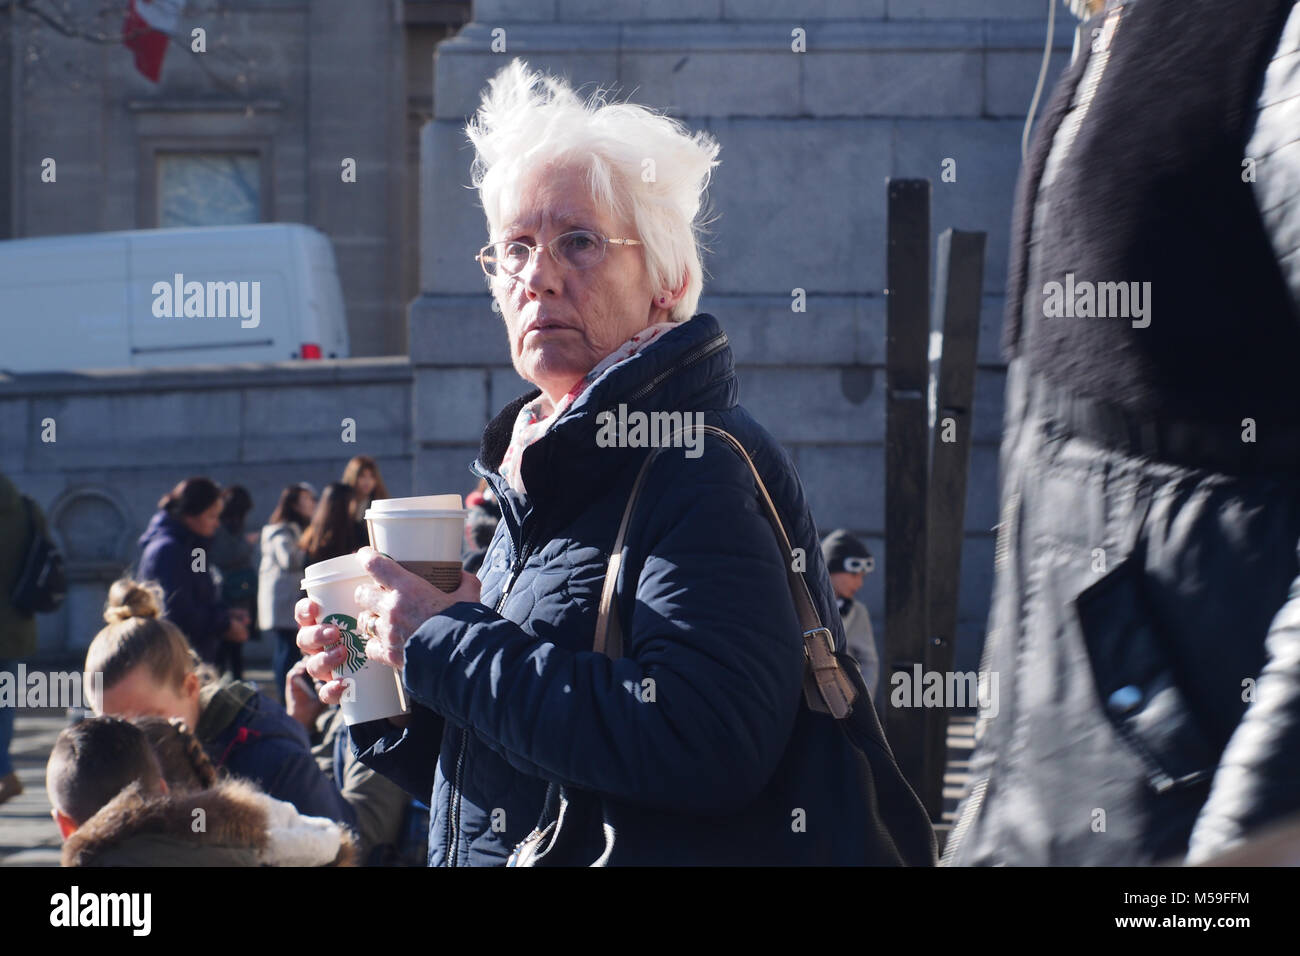 An older woman holding two disposable cups containing hot drinks with people in the background, Trafalger Square, - Stock Image